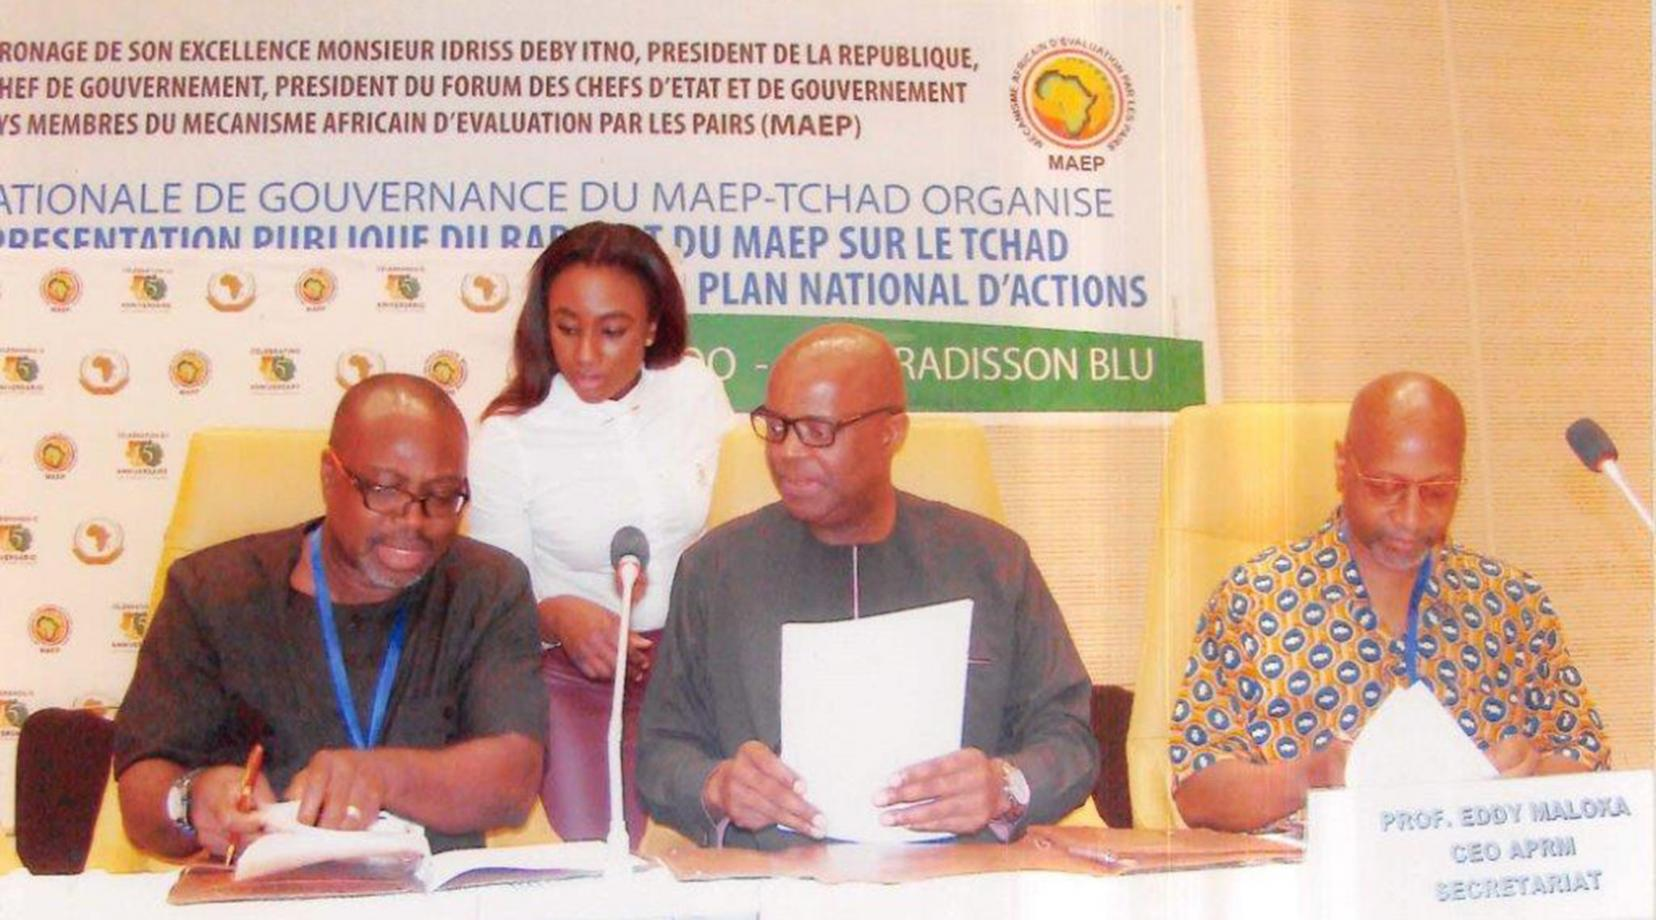 (L-r seated)  DSU's Dr. Akwasi Osei, associate dean of the College of Humanities, Education and Social Sciences, Dr. Eddy Maloka, CEO OF APRM, and Ezrah Aharone, DSU adjunct associate professor of history and political science, sign the partnership document in the African country of Chad, while an identified woman assists them.